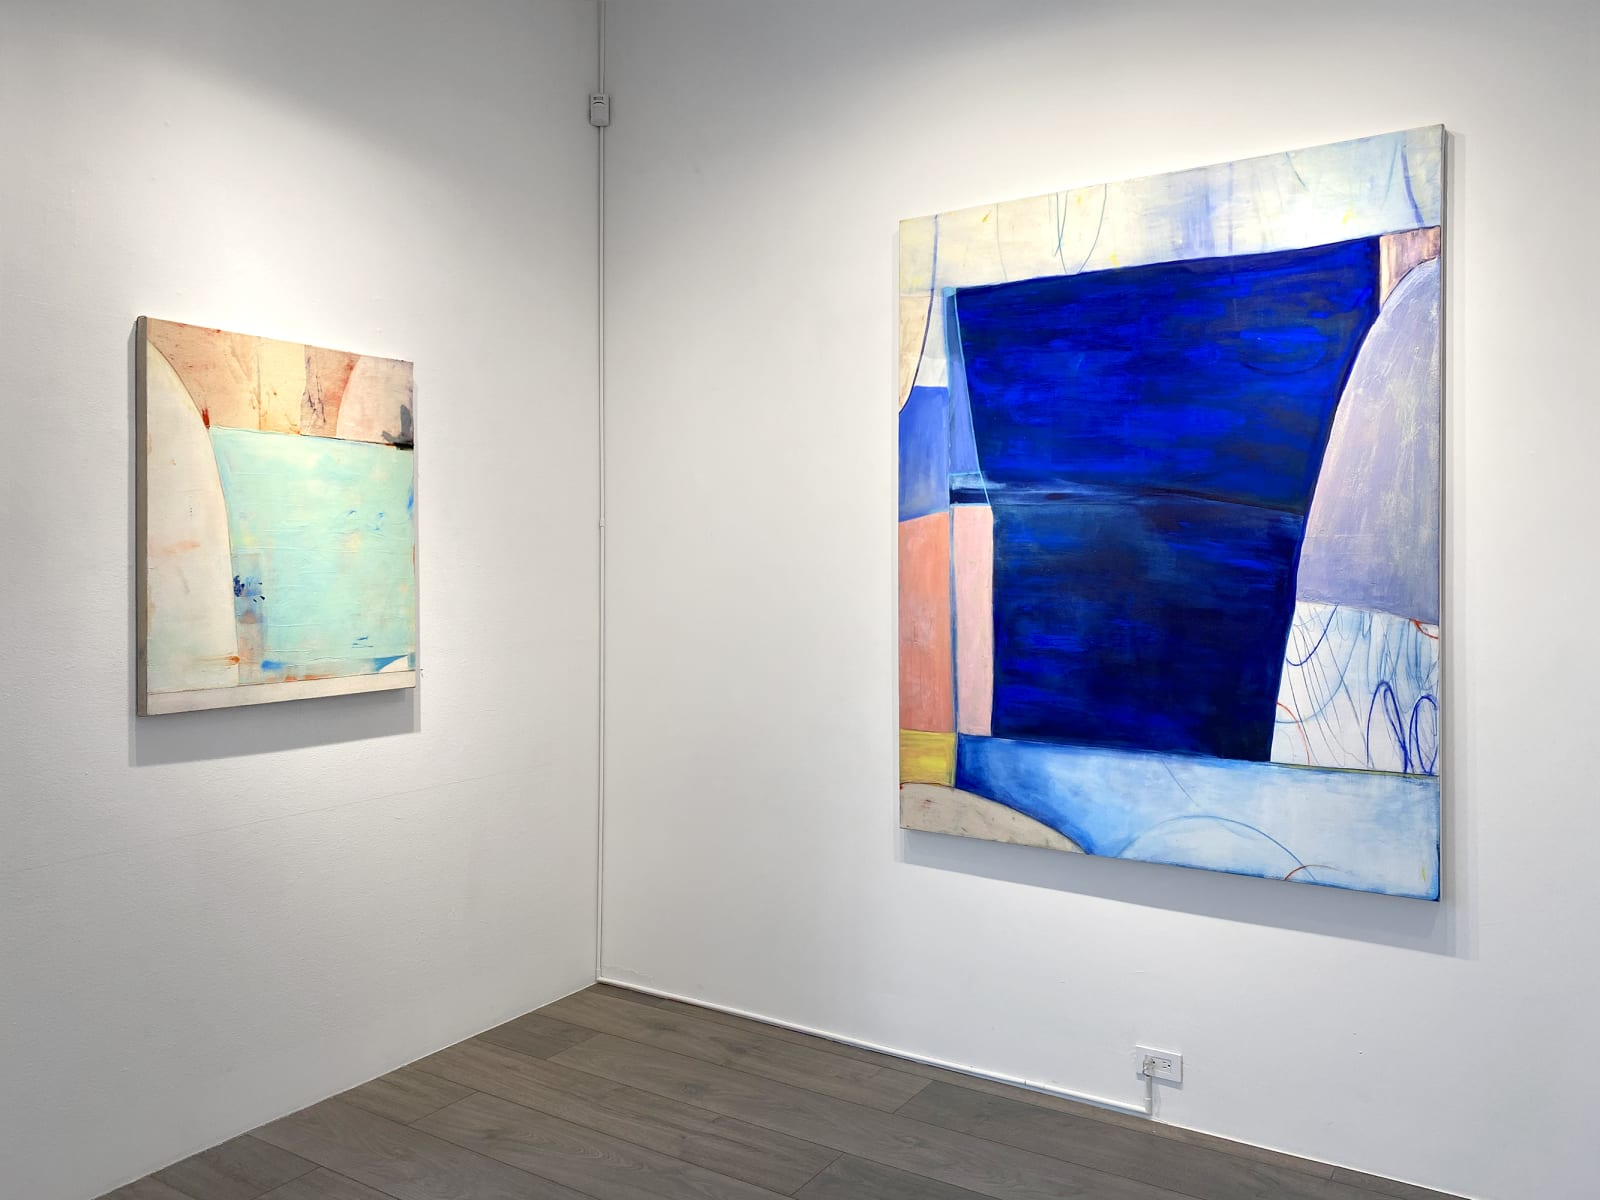 Installation view: Dana James: Something I Meant to Say